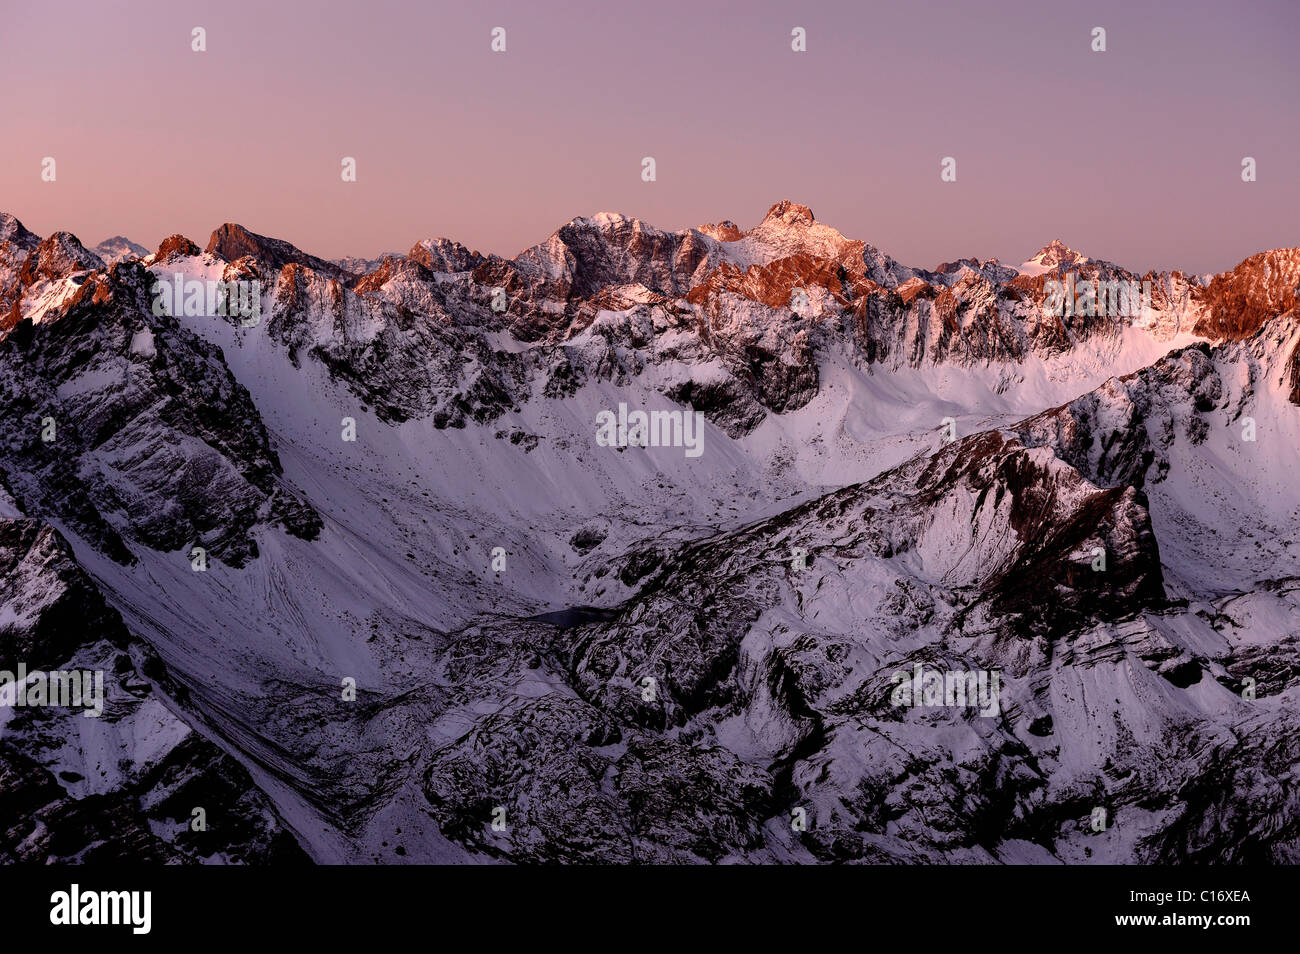 Snow-covered Alpine peaks at sunrise, Gramais, Lechtal, Reutte, Tirol, Austria, Europe - Stock Image